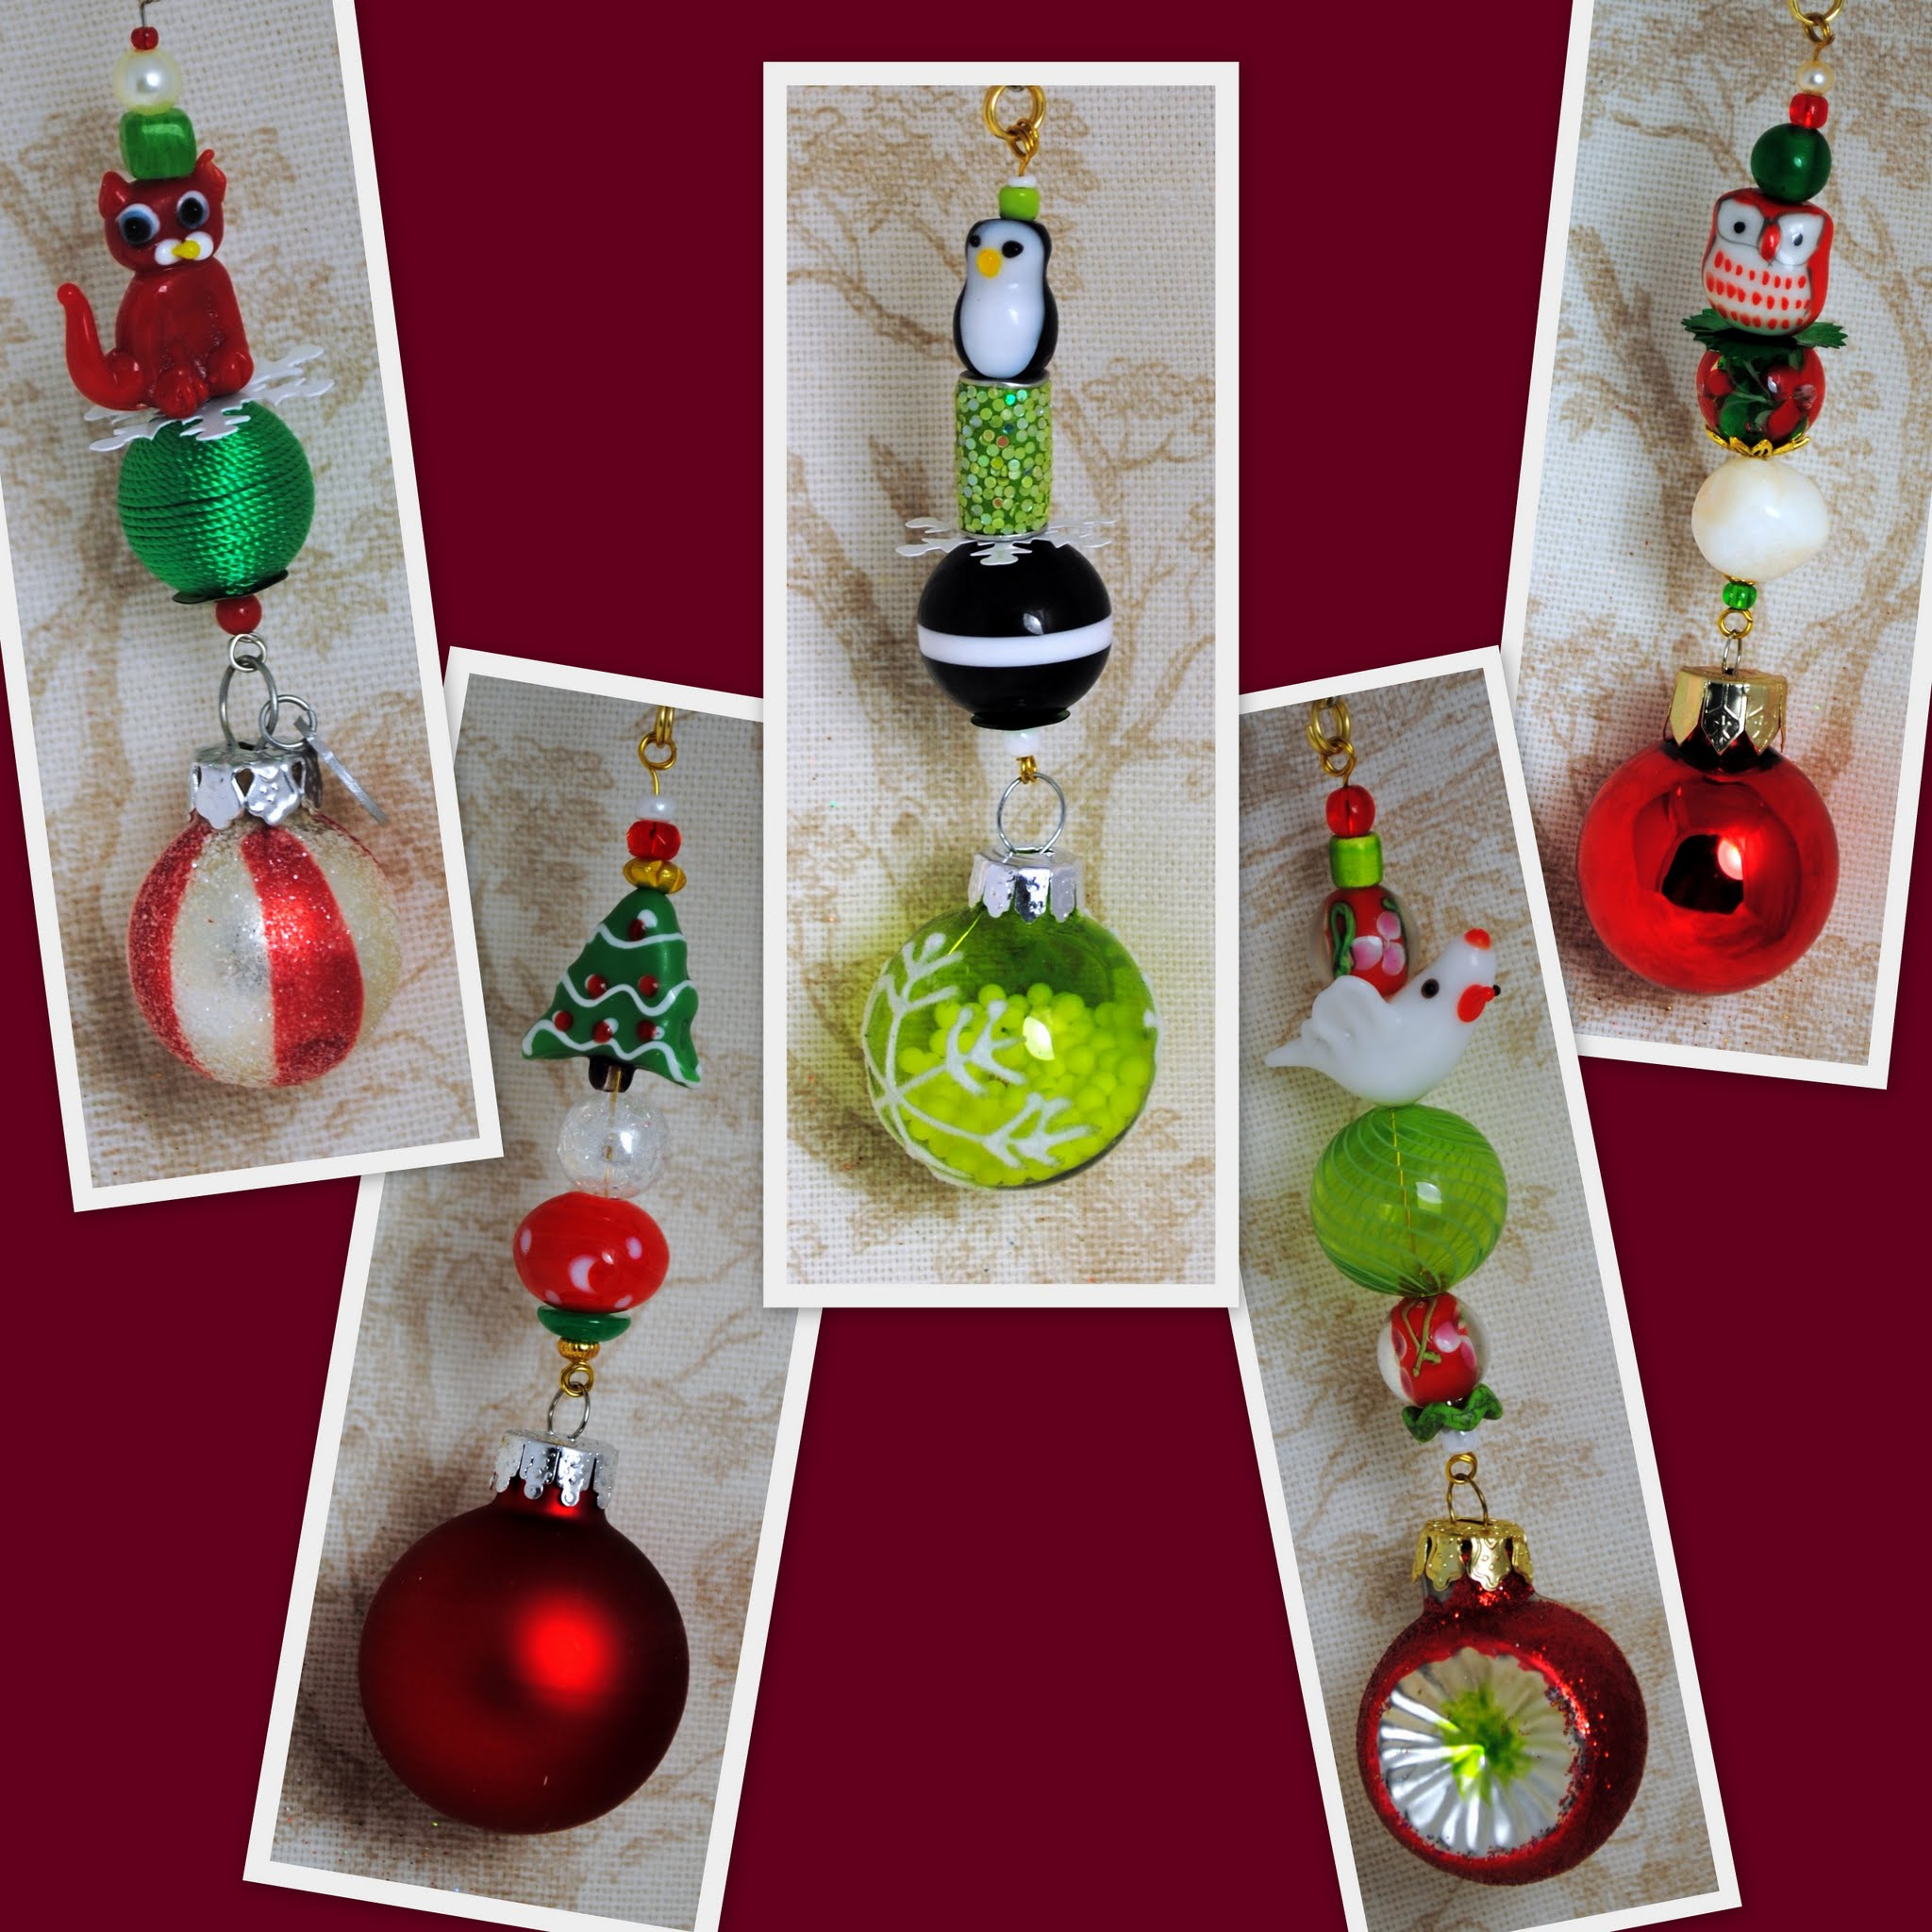 Candy Land Christmas Ornaments